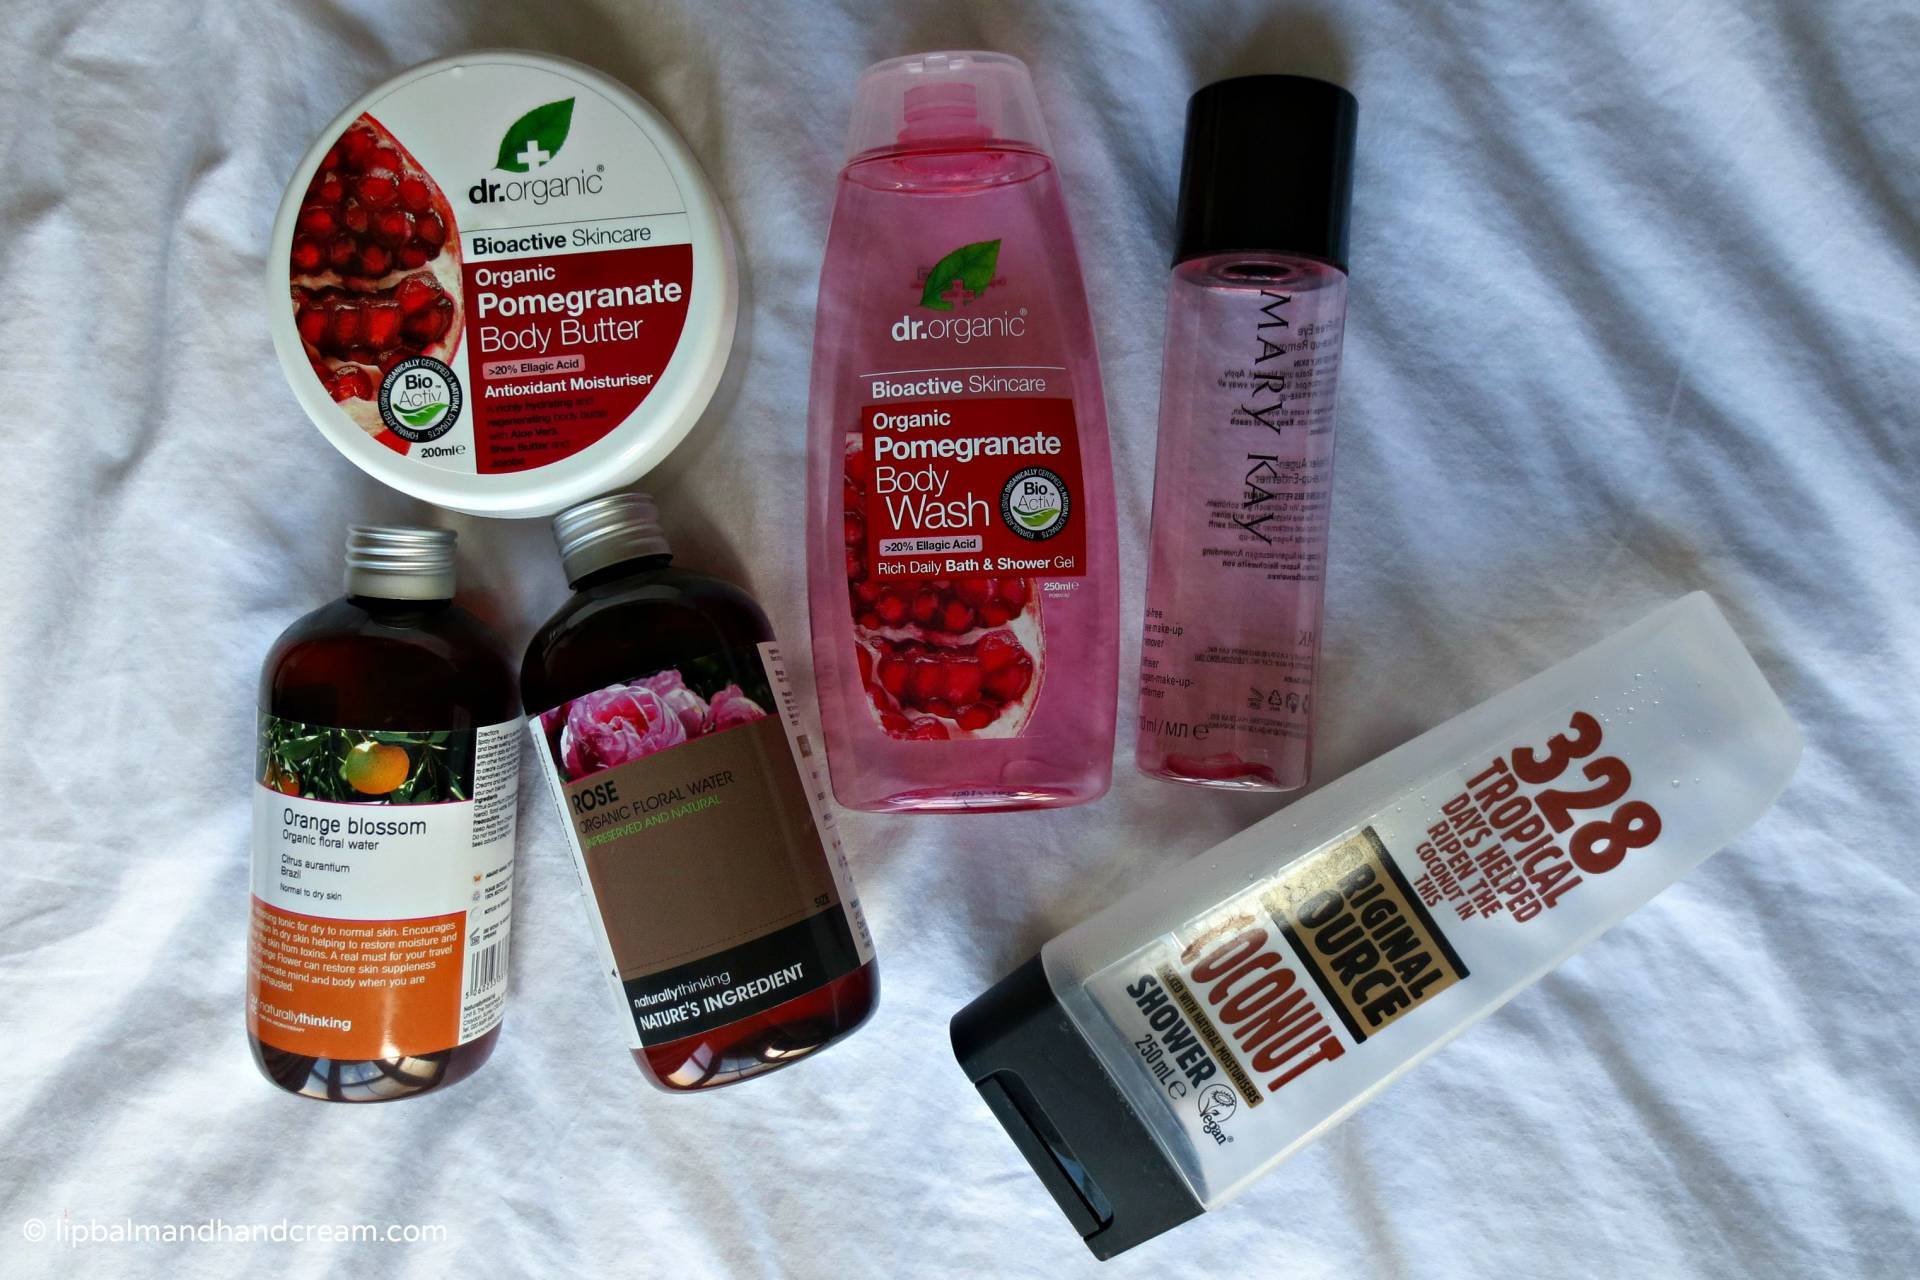 This month's empties from Dr Organic, Mary Kay, Original Source and Naturally Thinking